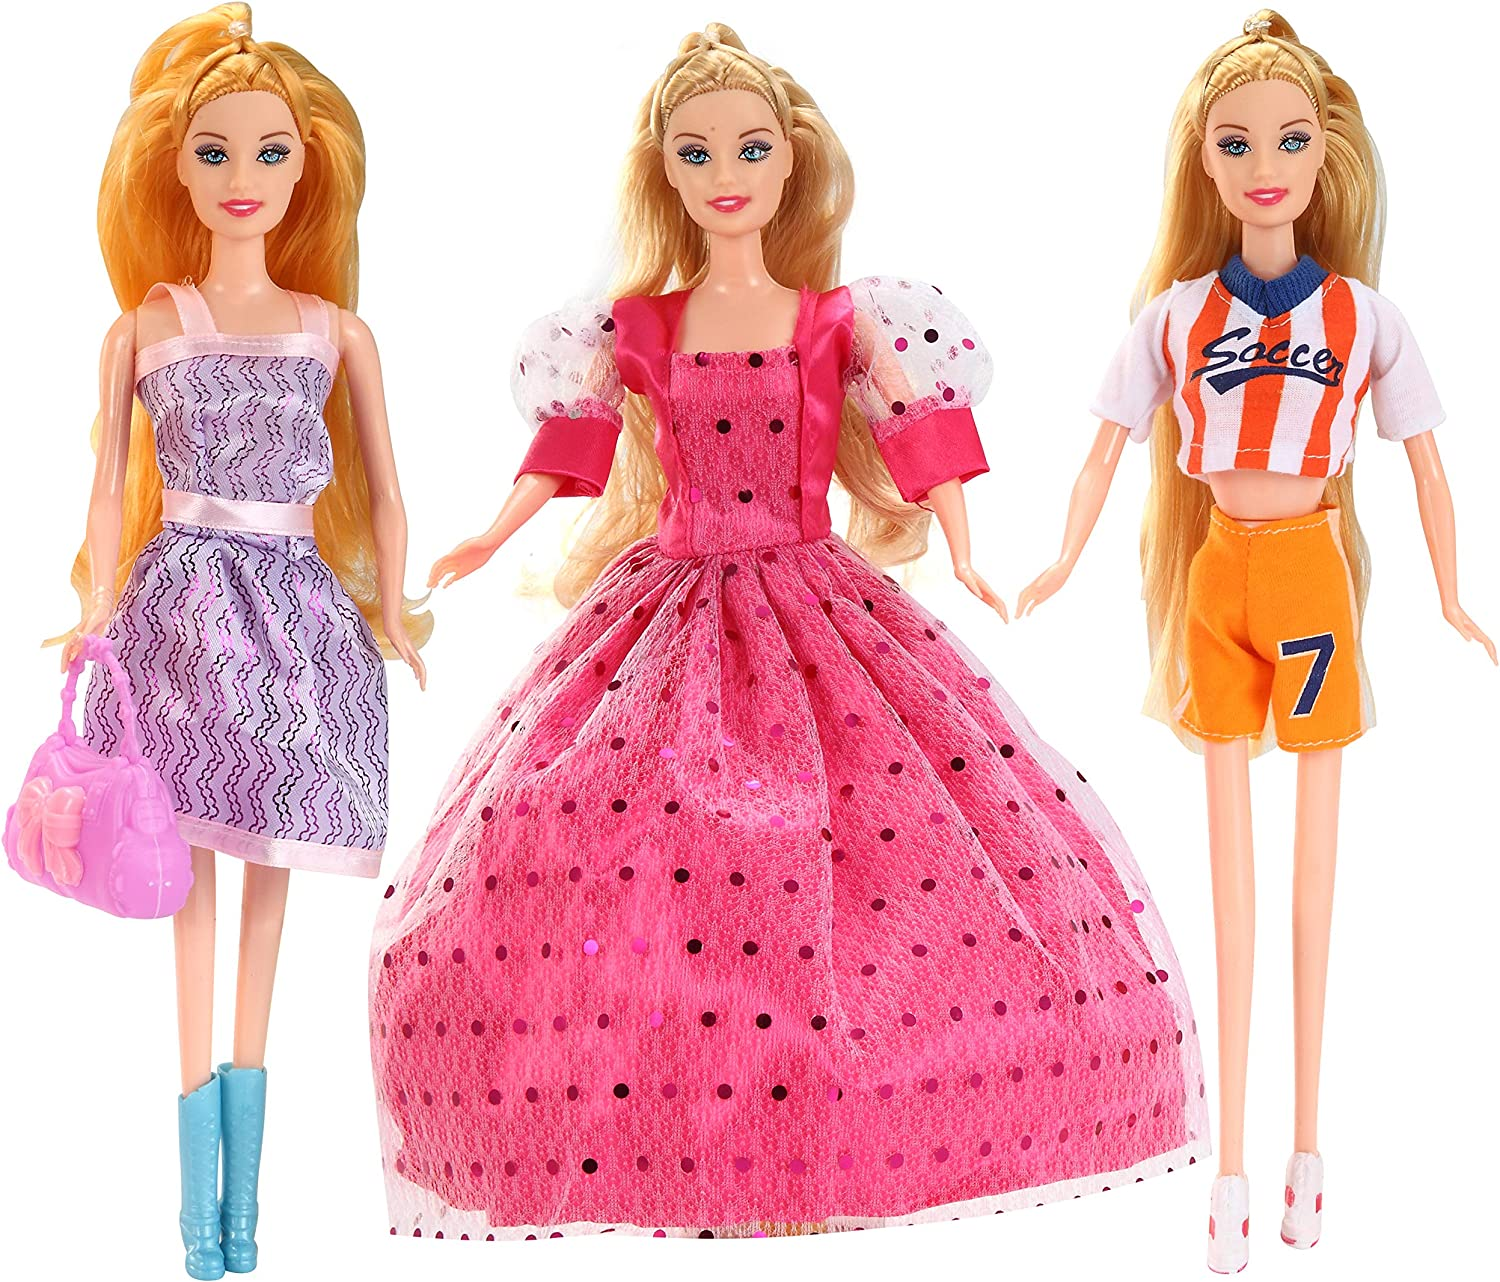 JOYIN 2020 Girls Advent Calendar with Doll Accessorie Toys Girls Christmas 24 Days Countdown Calendar Toys with Doll Dress Up Clothes and Accessories Set